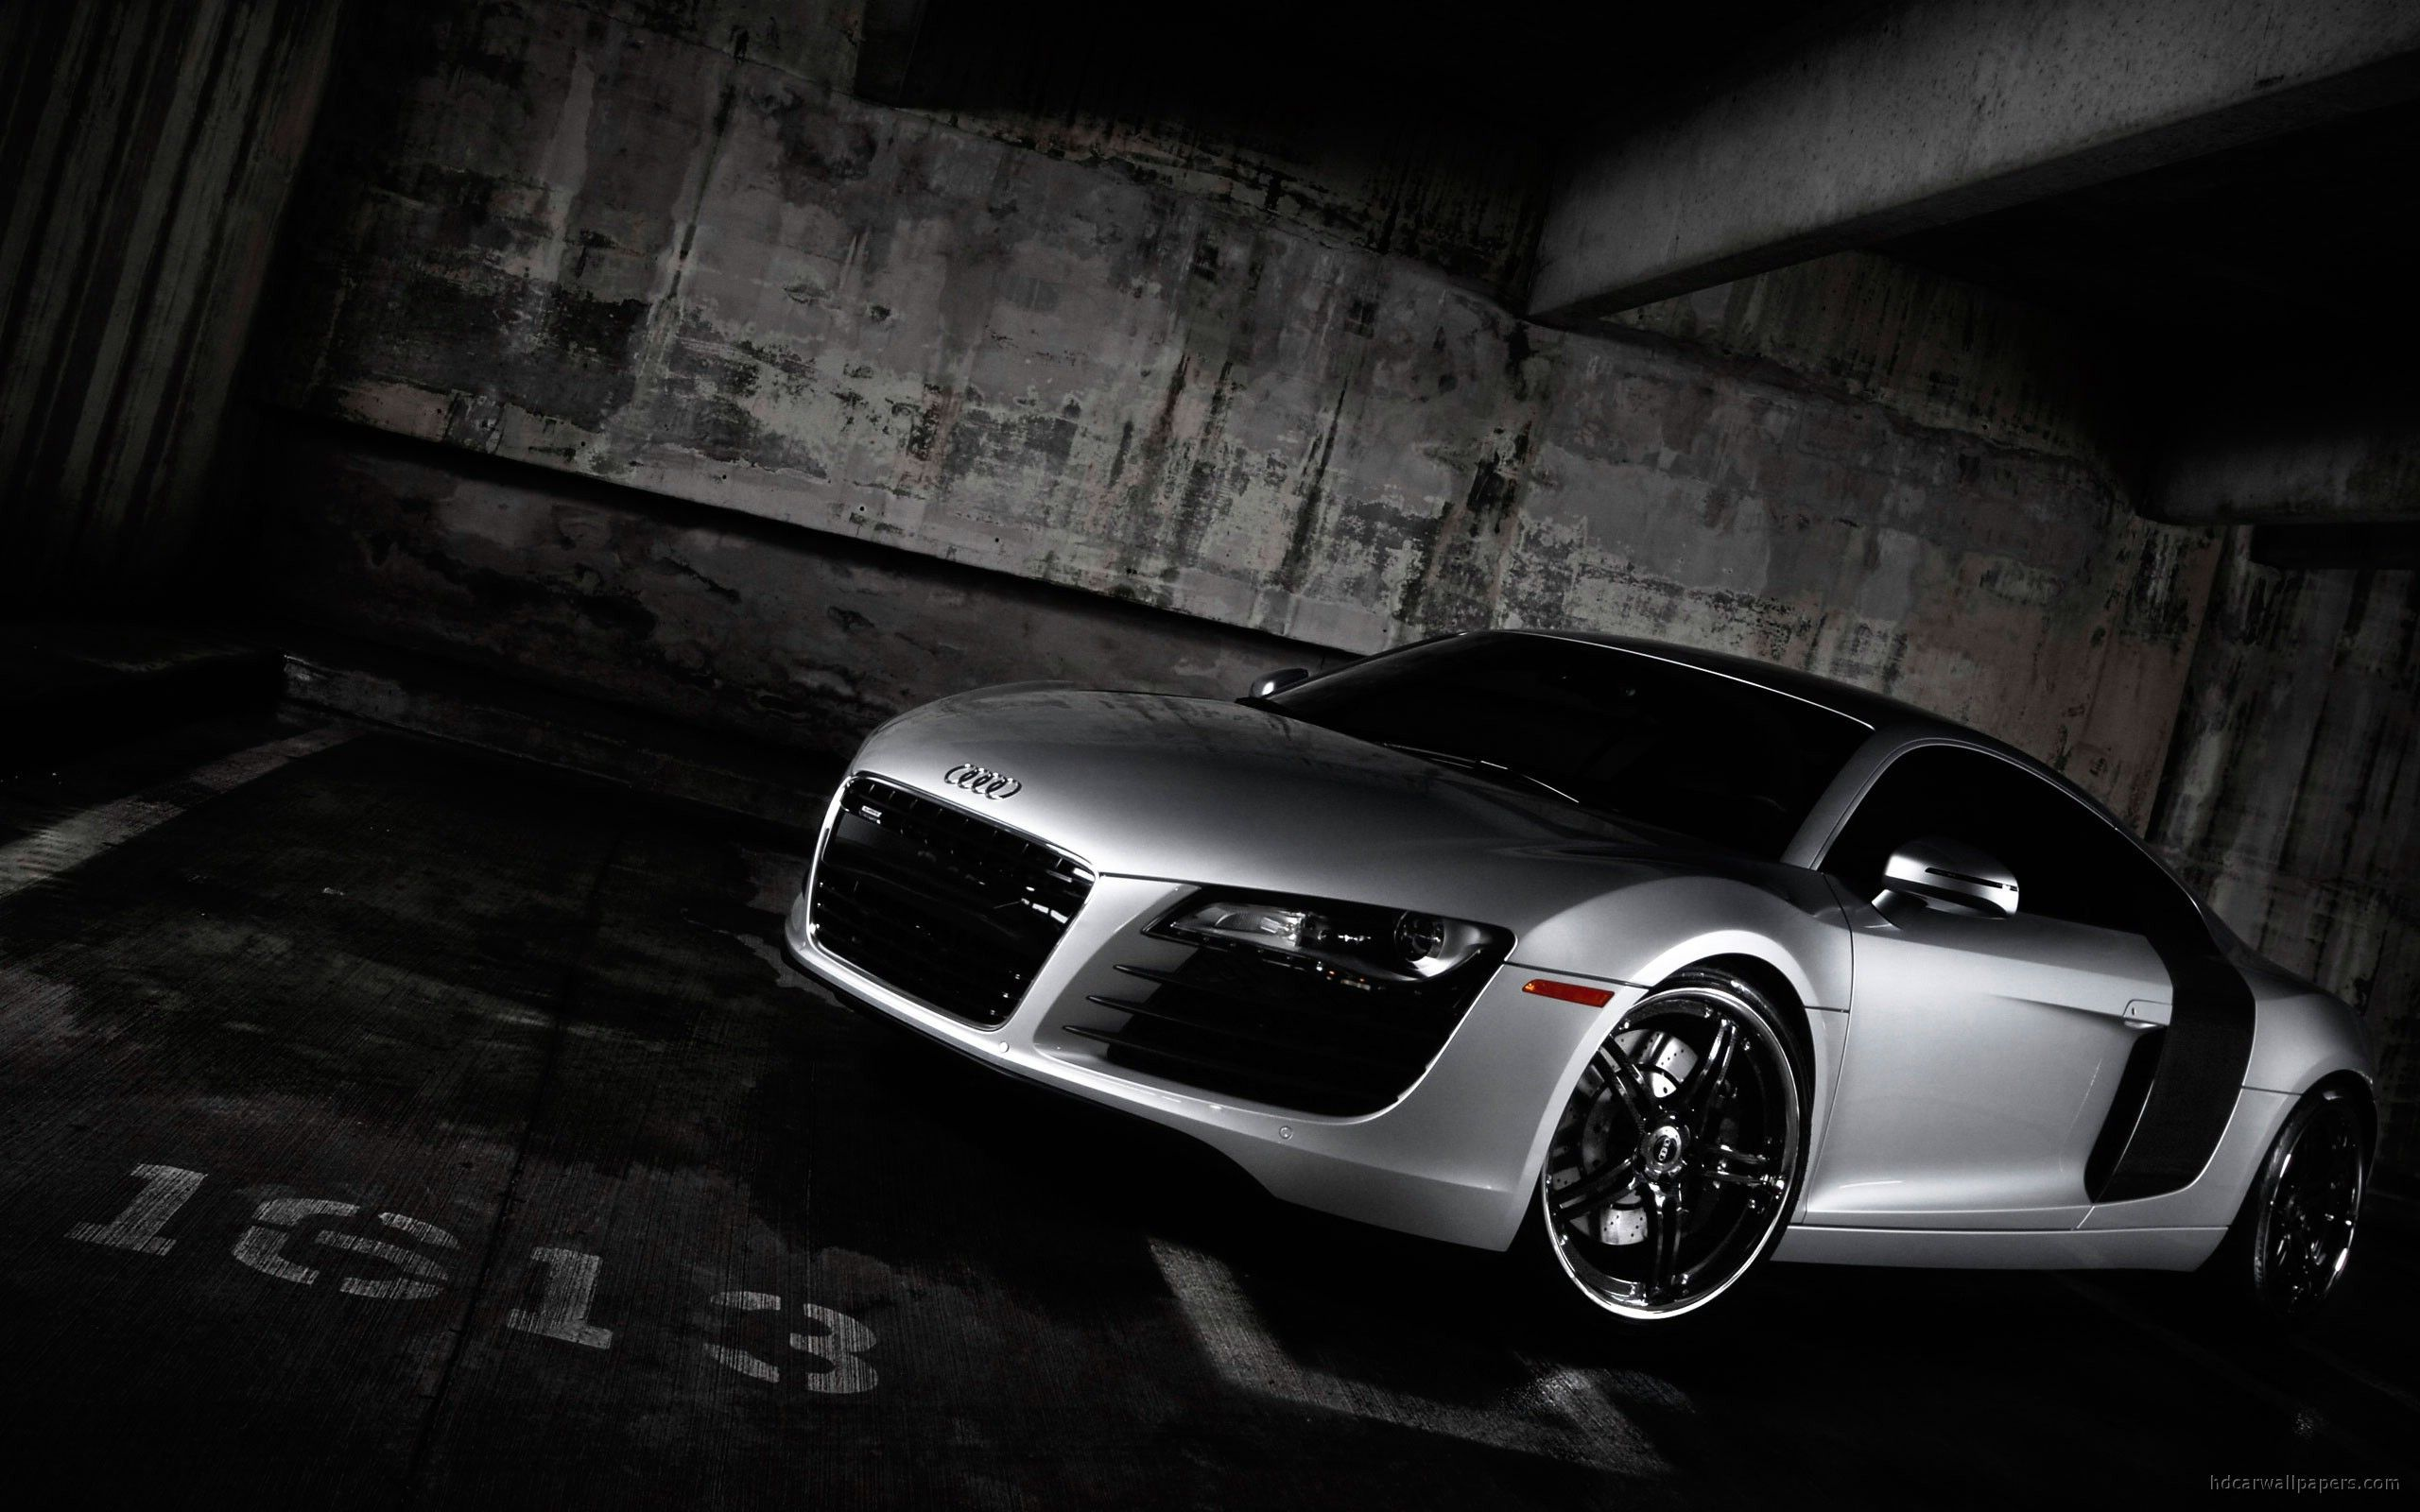 Audi R Wallpaper Audi Cars Wallpapers For Free Download About - Audi car background